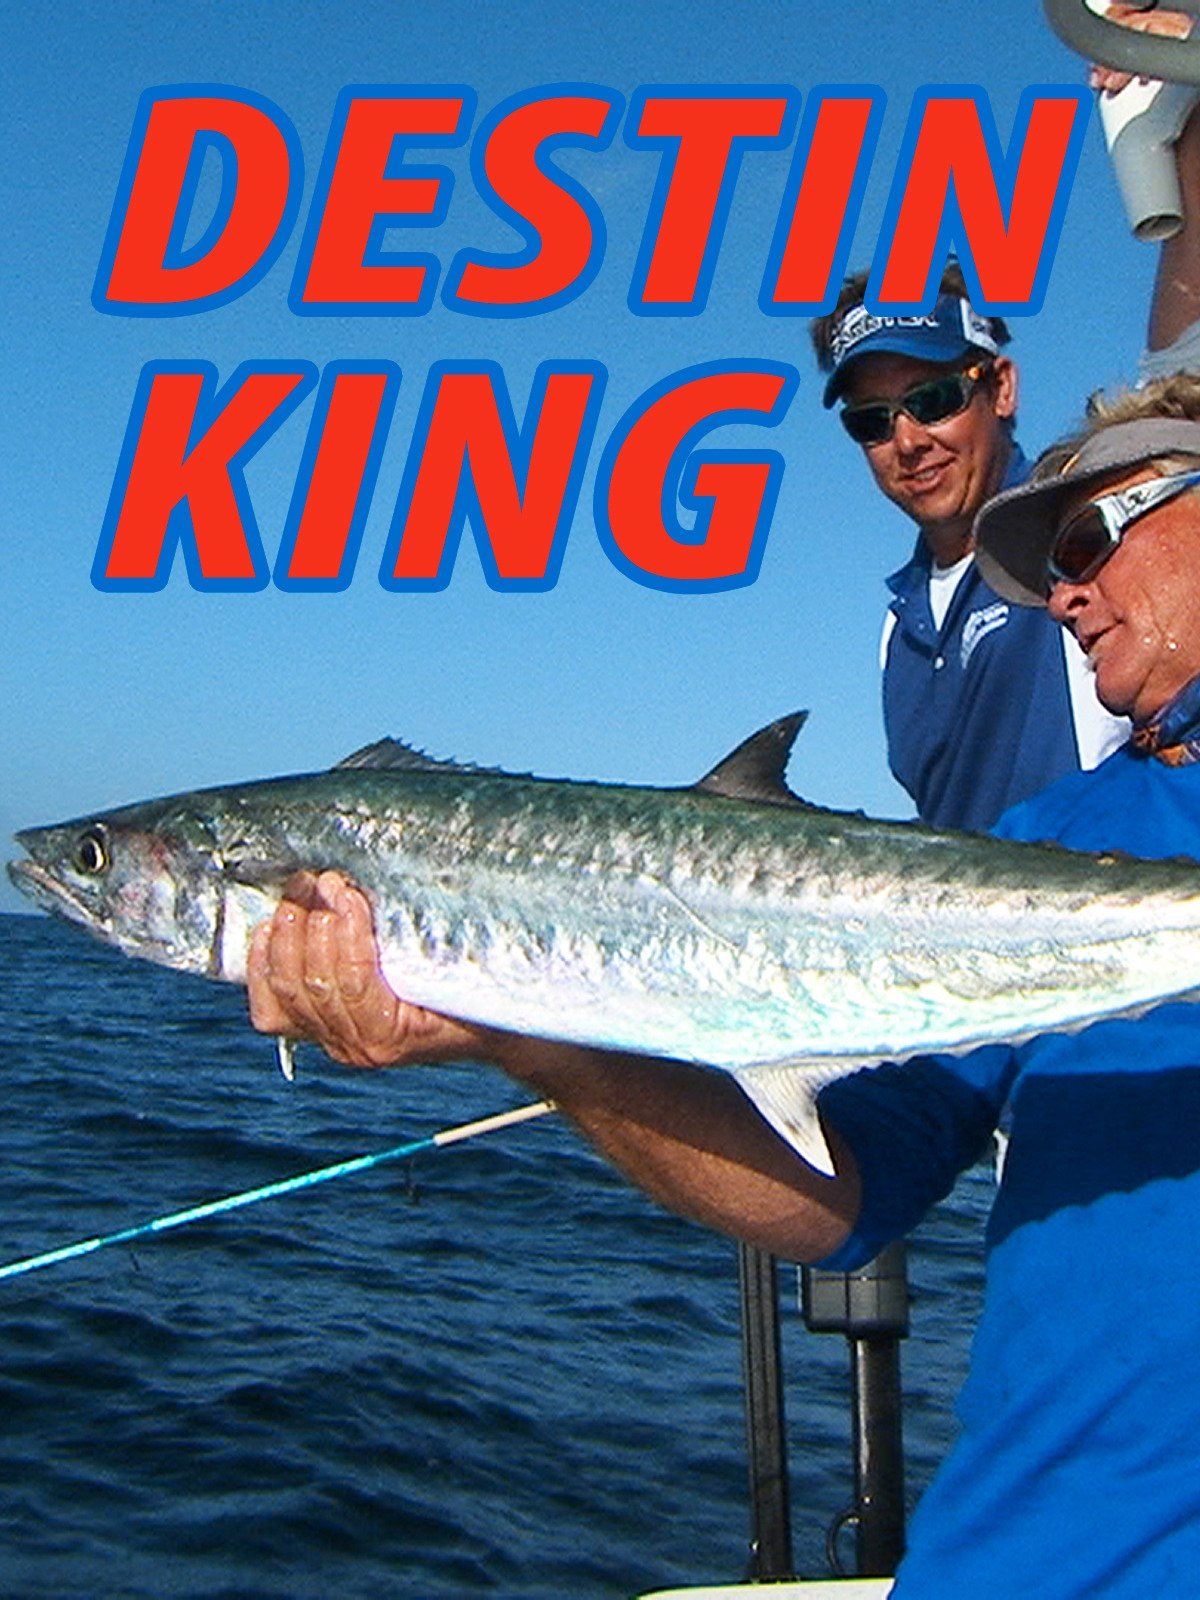 Clip: Destin King